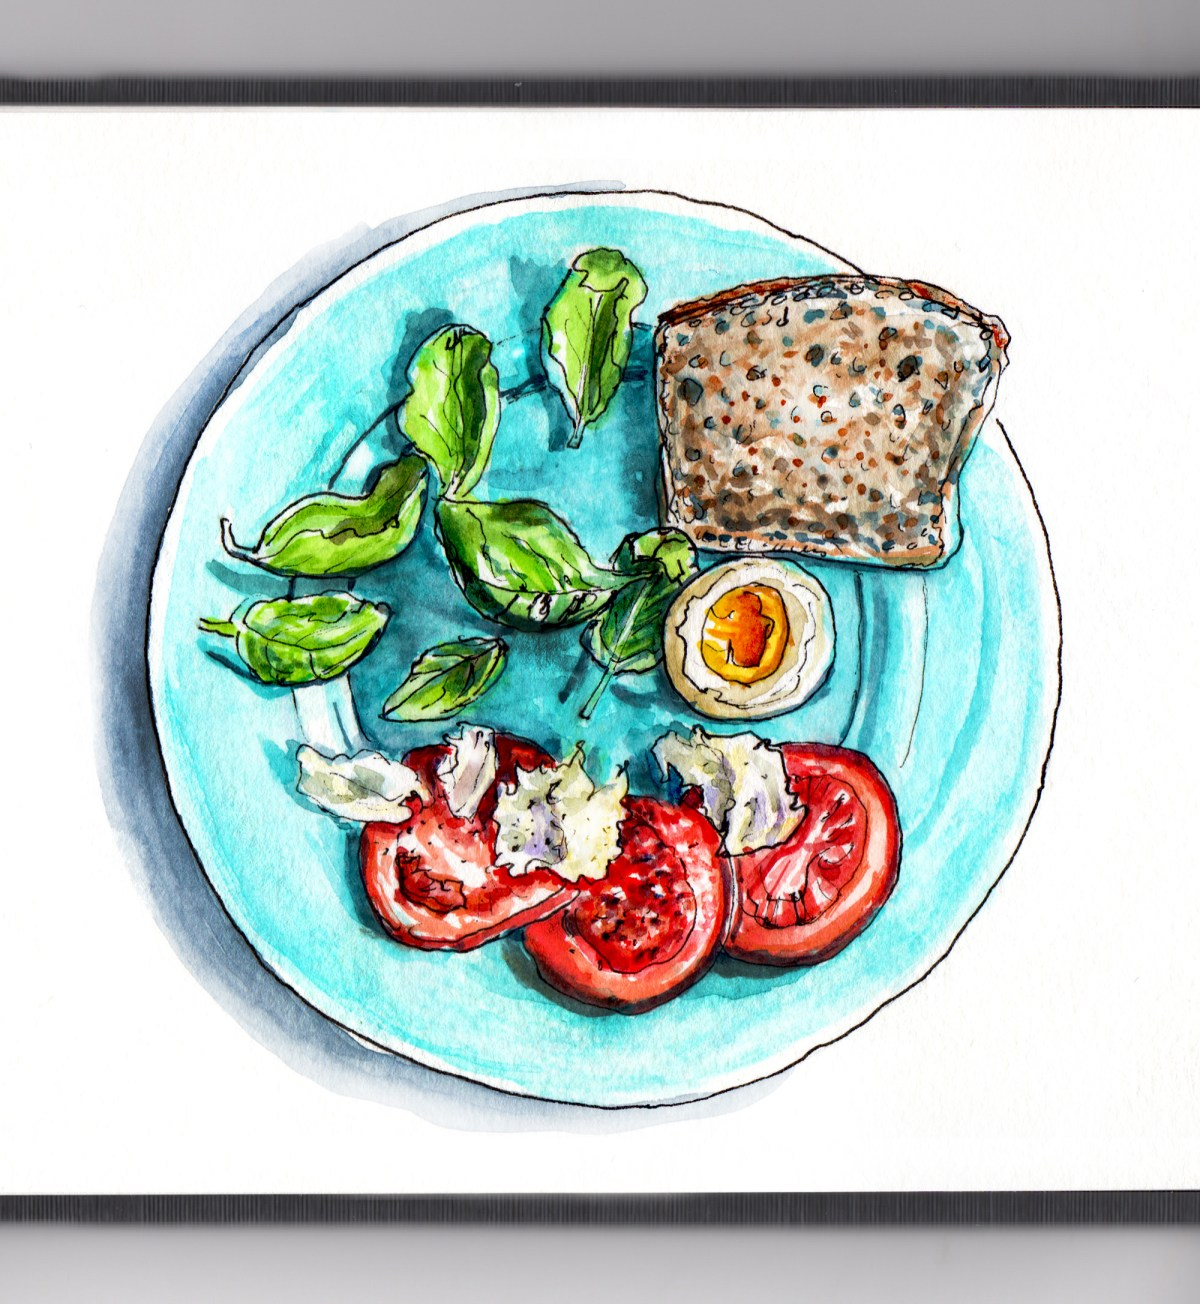 Day 29 - #WorldWatercolorGroup - Domestic Transitions Eating Healthier - Plate with Tomato Basil Mozeralla Egg and Wheat Bread - #doodlewash